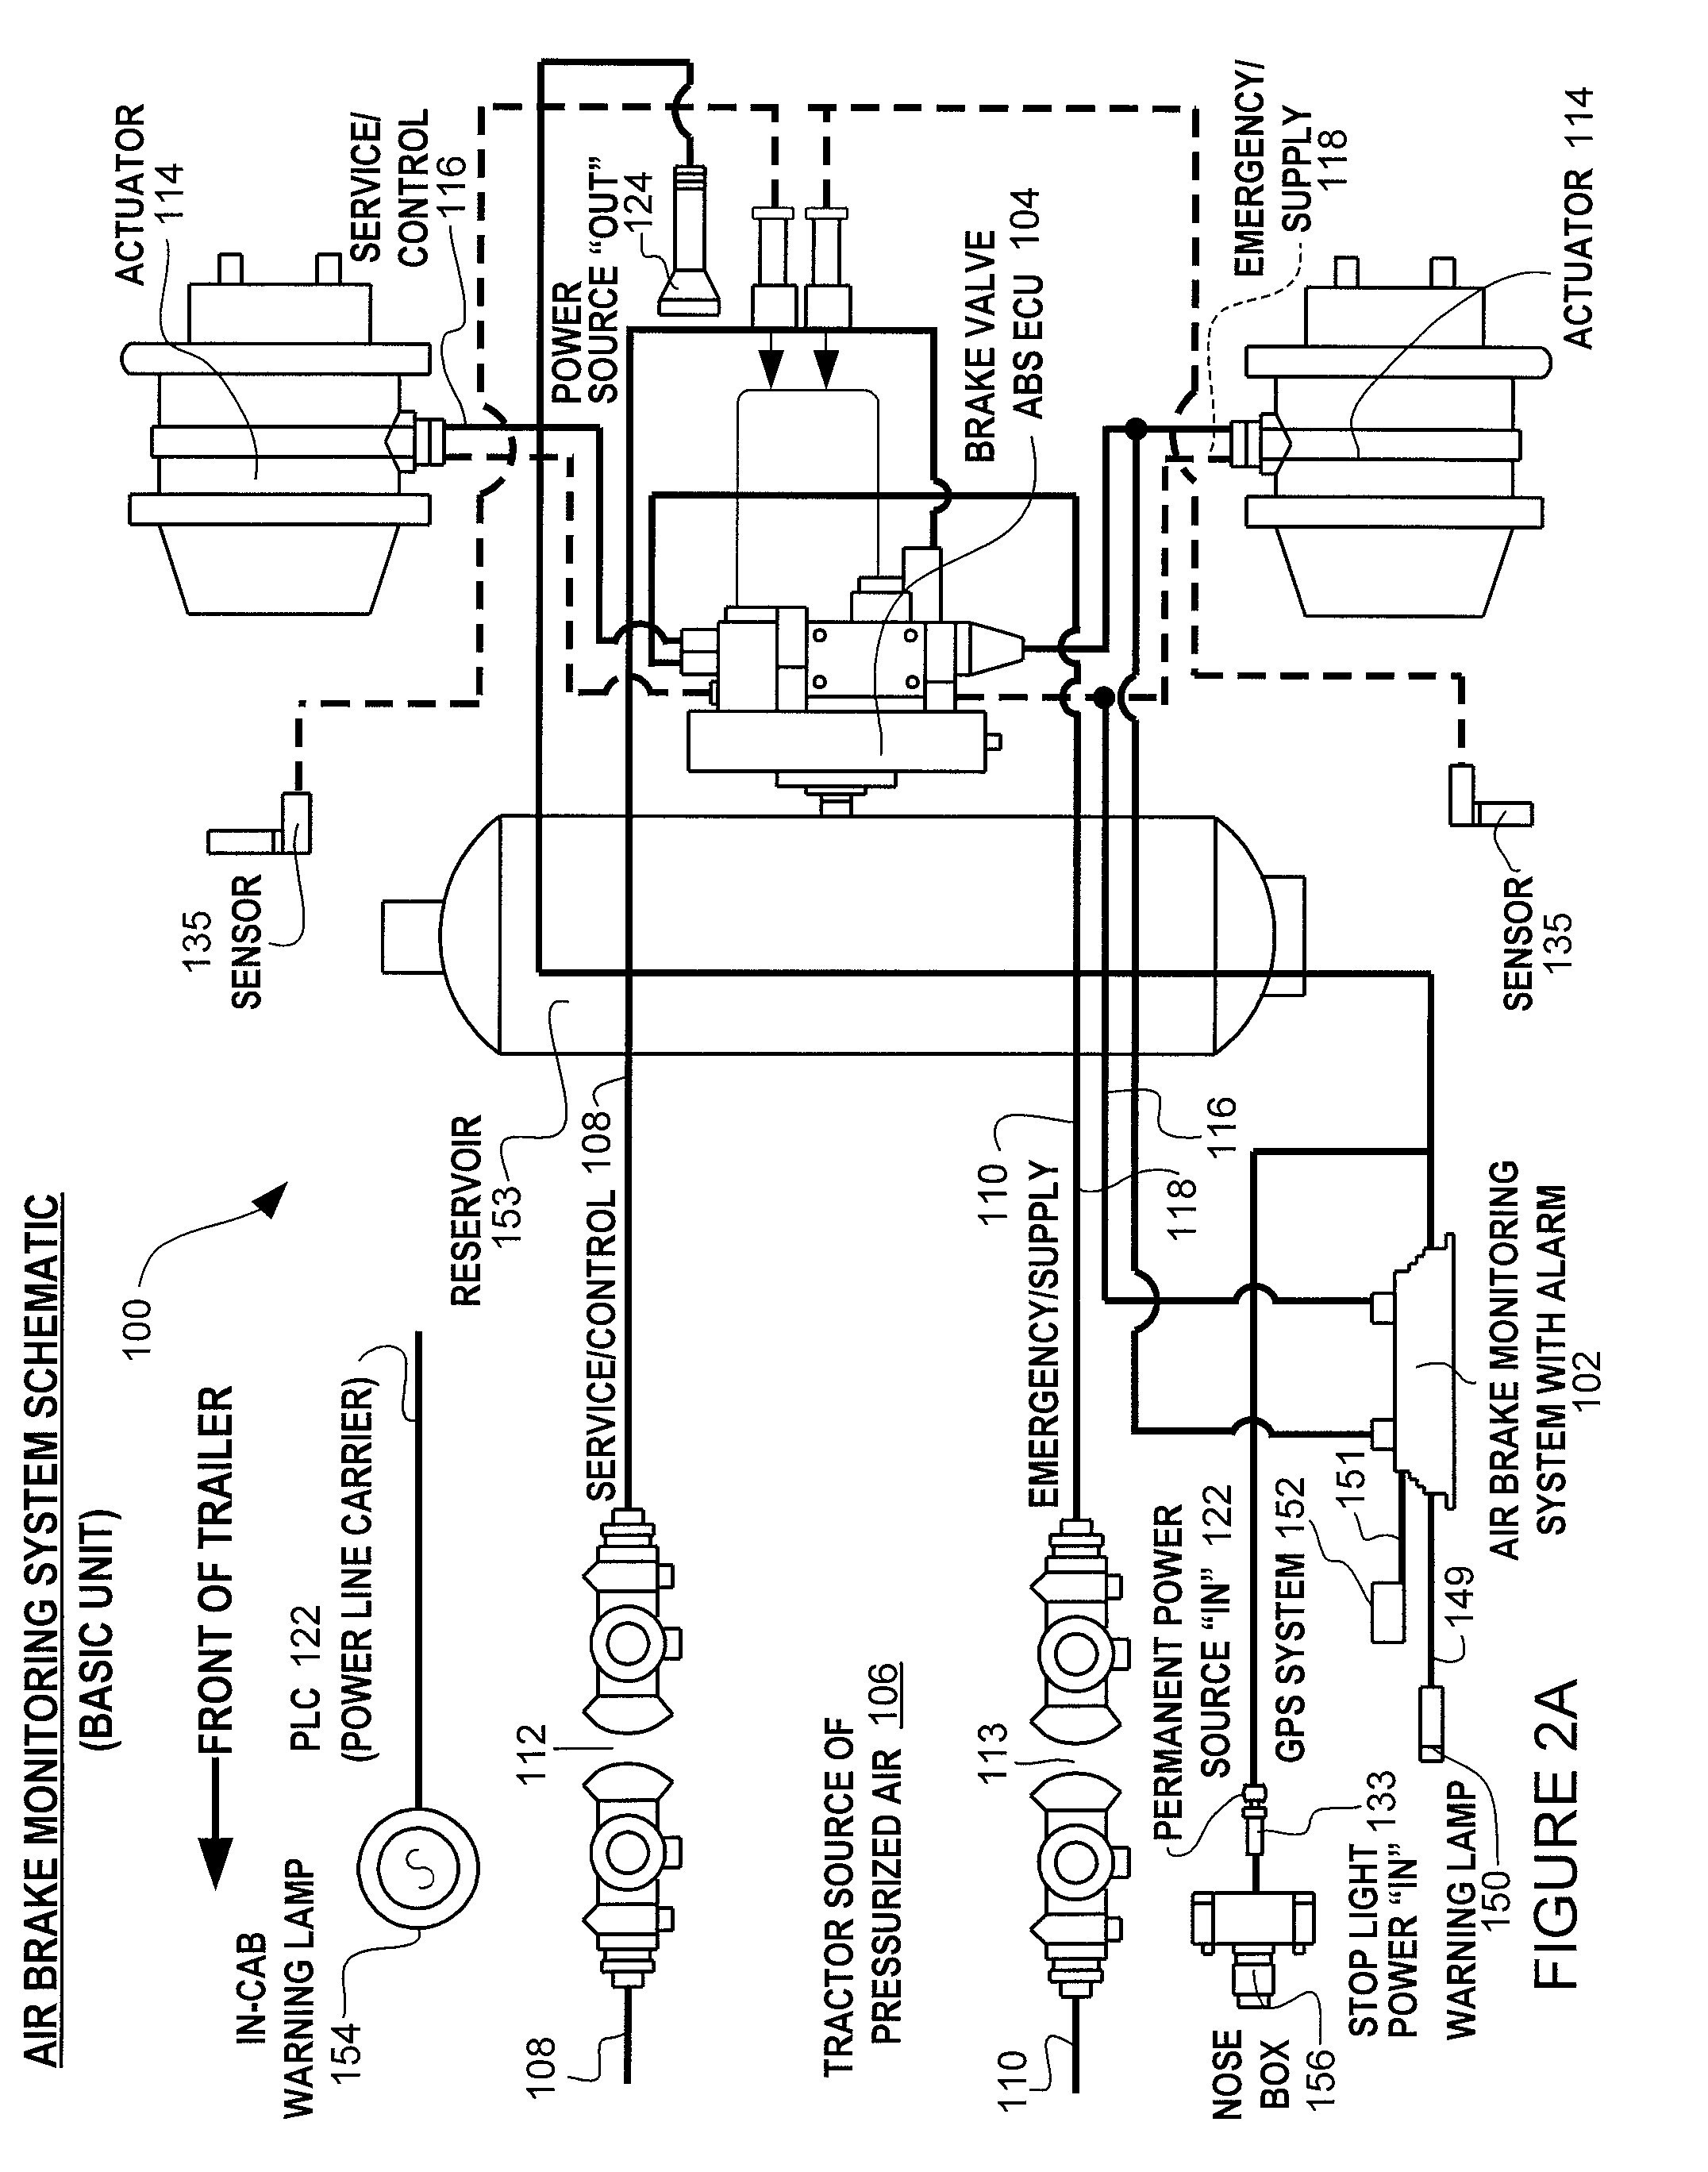 110v Schematic Wiring Diagram Free Download Schematic